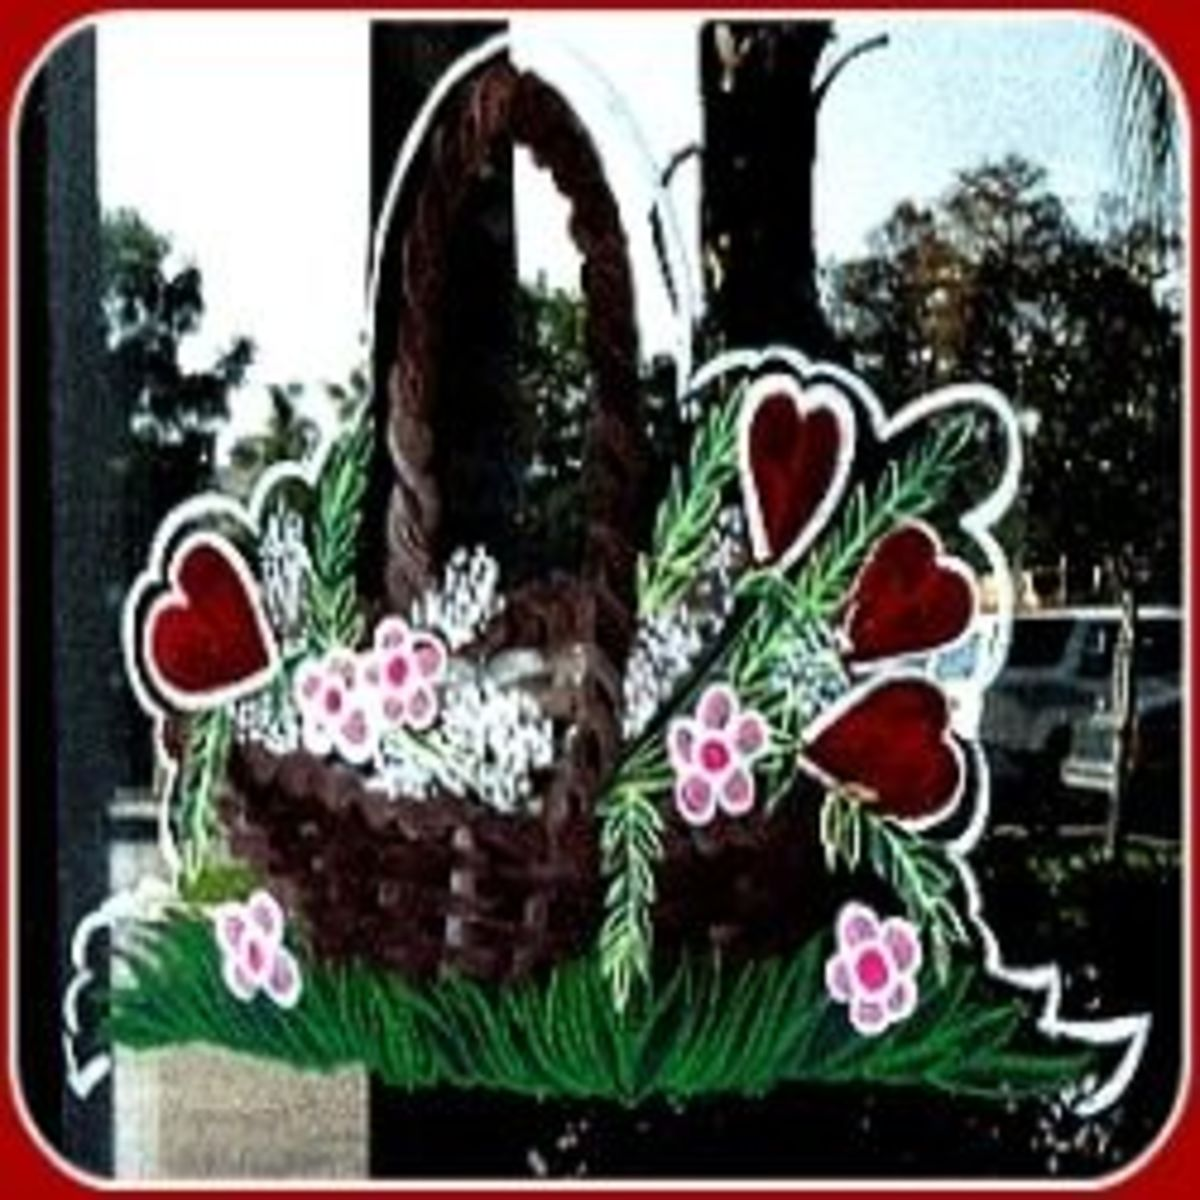 Valentines-Gift-Basket-Window Painting - Image M Burgess